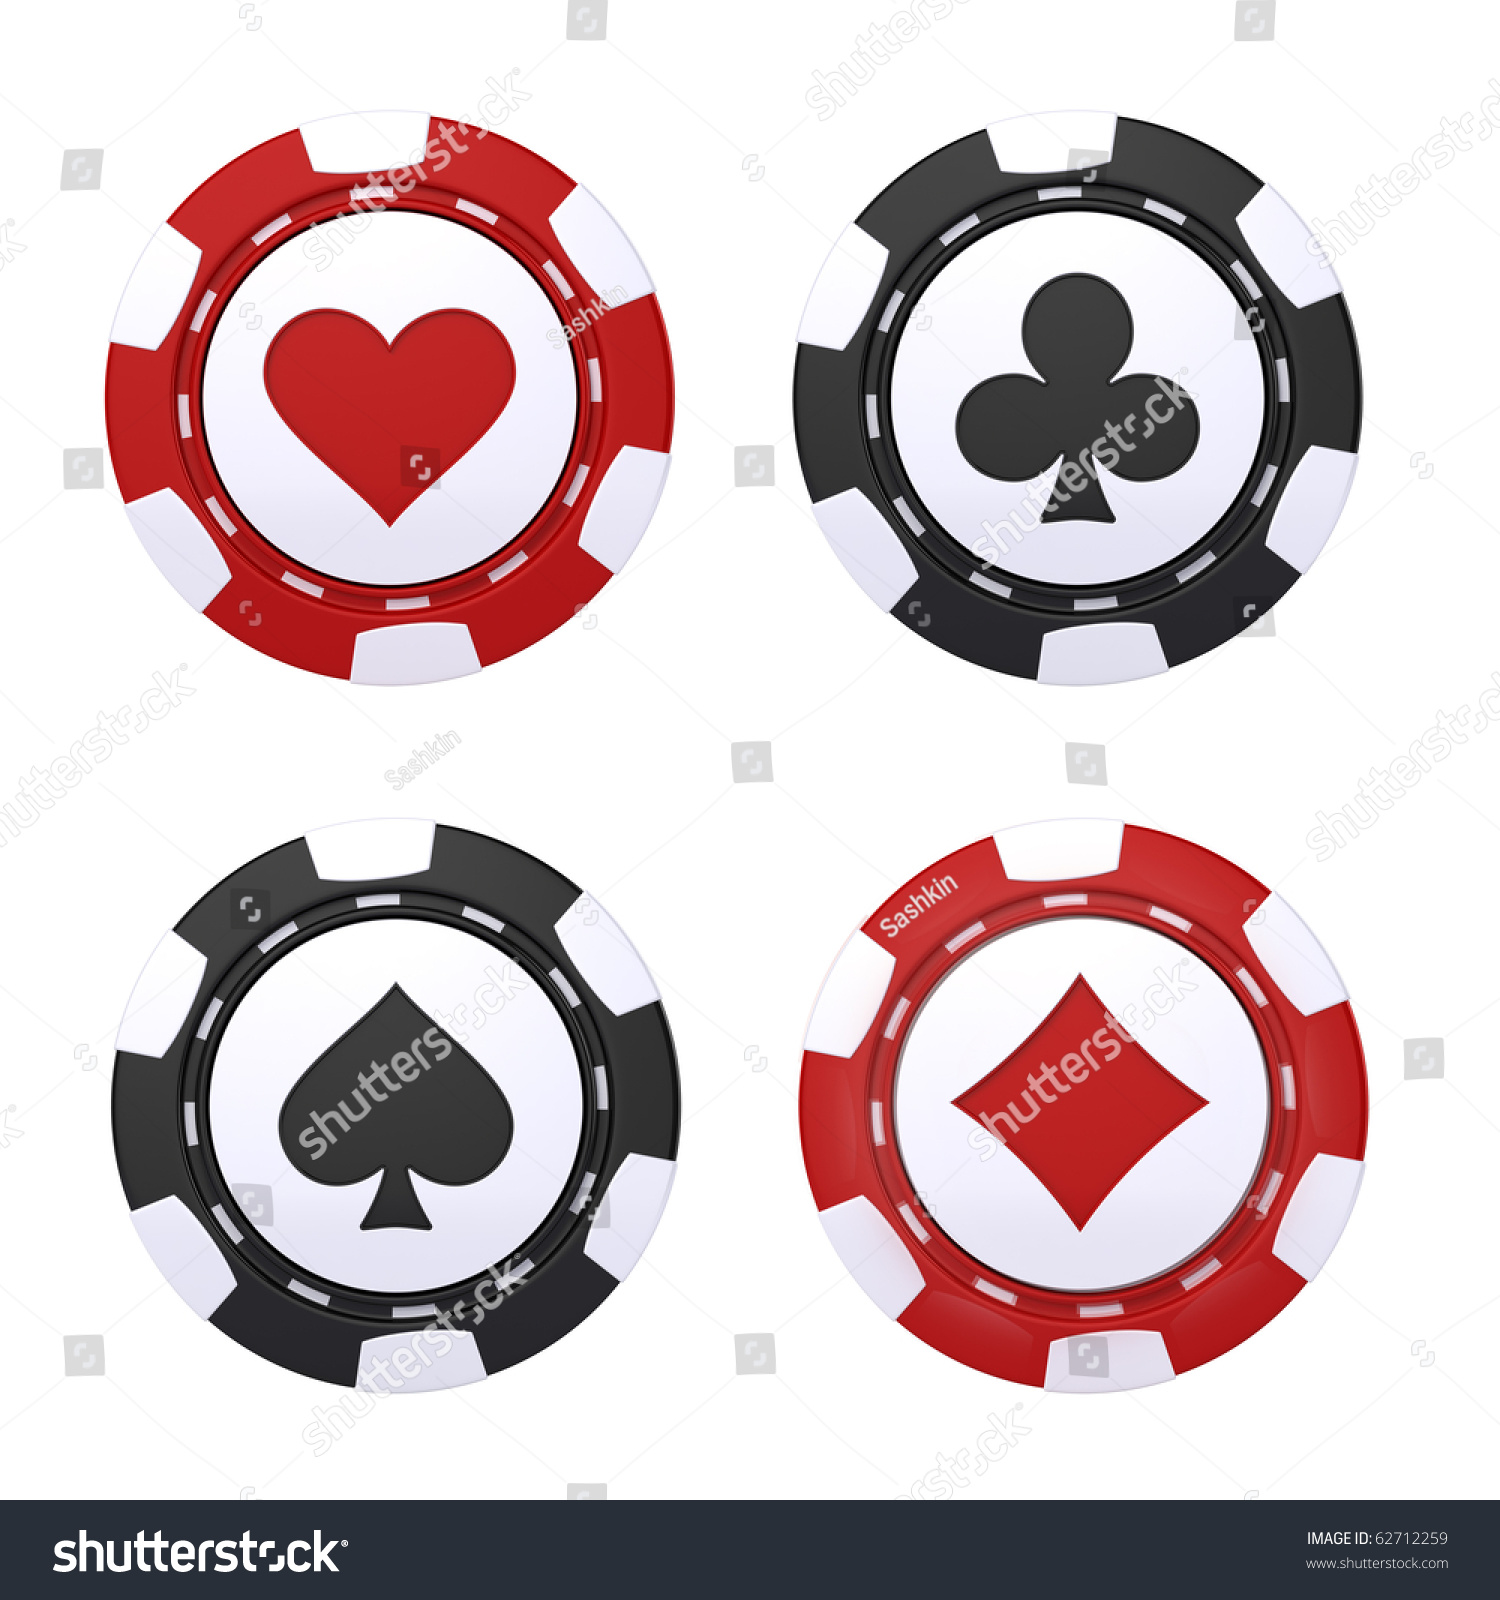 casino chips images